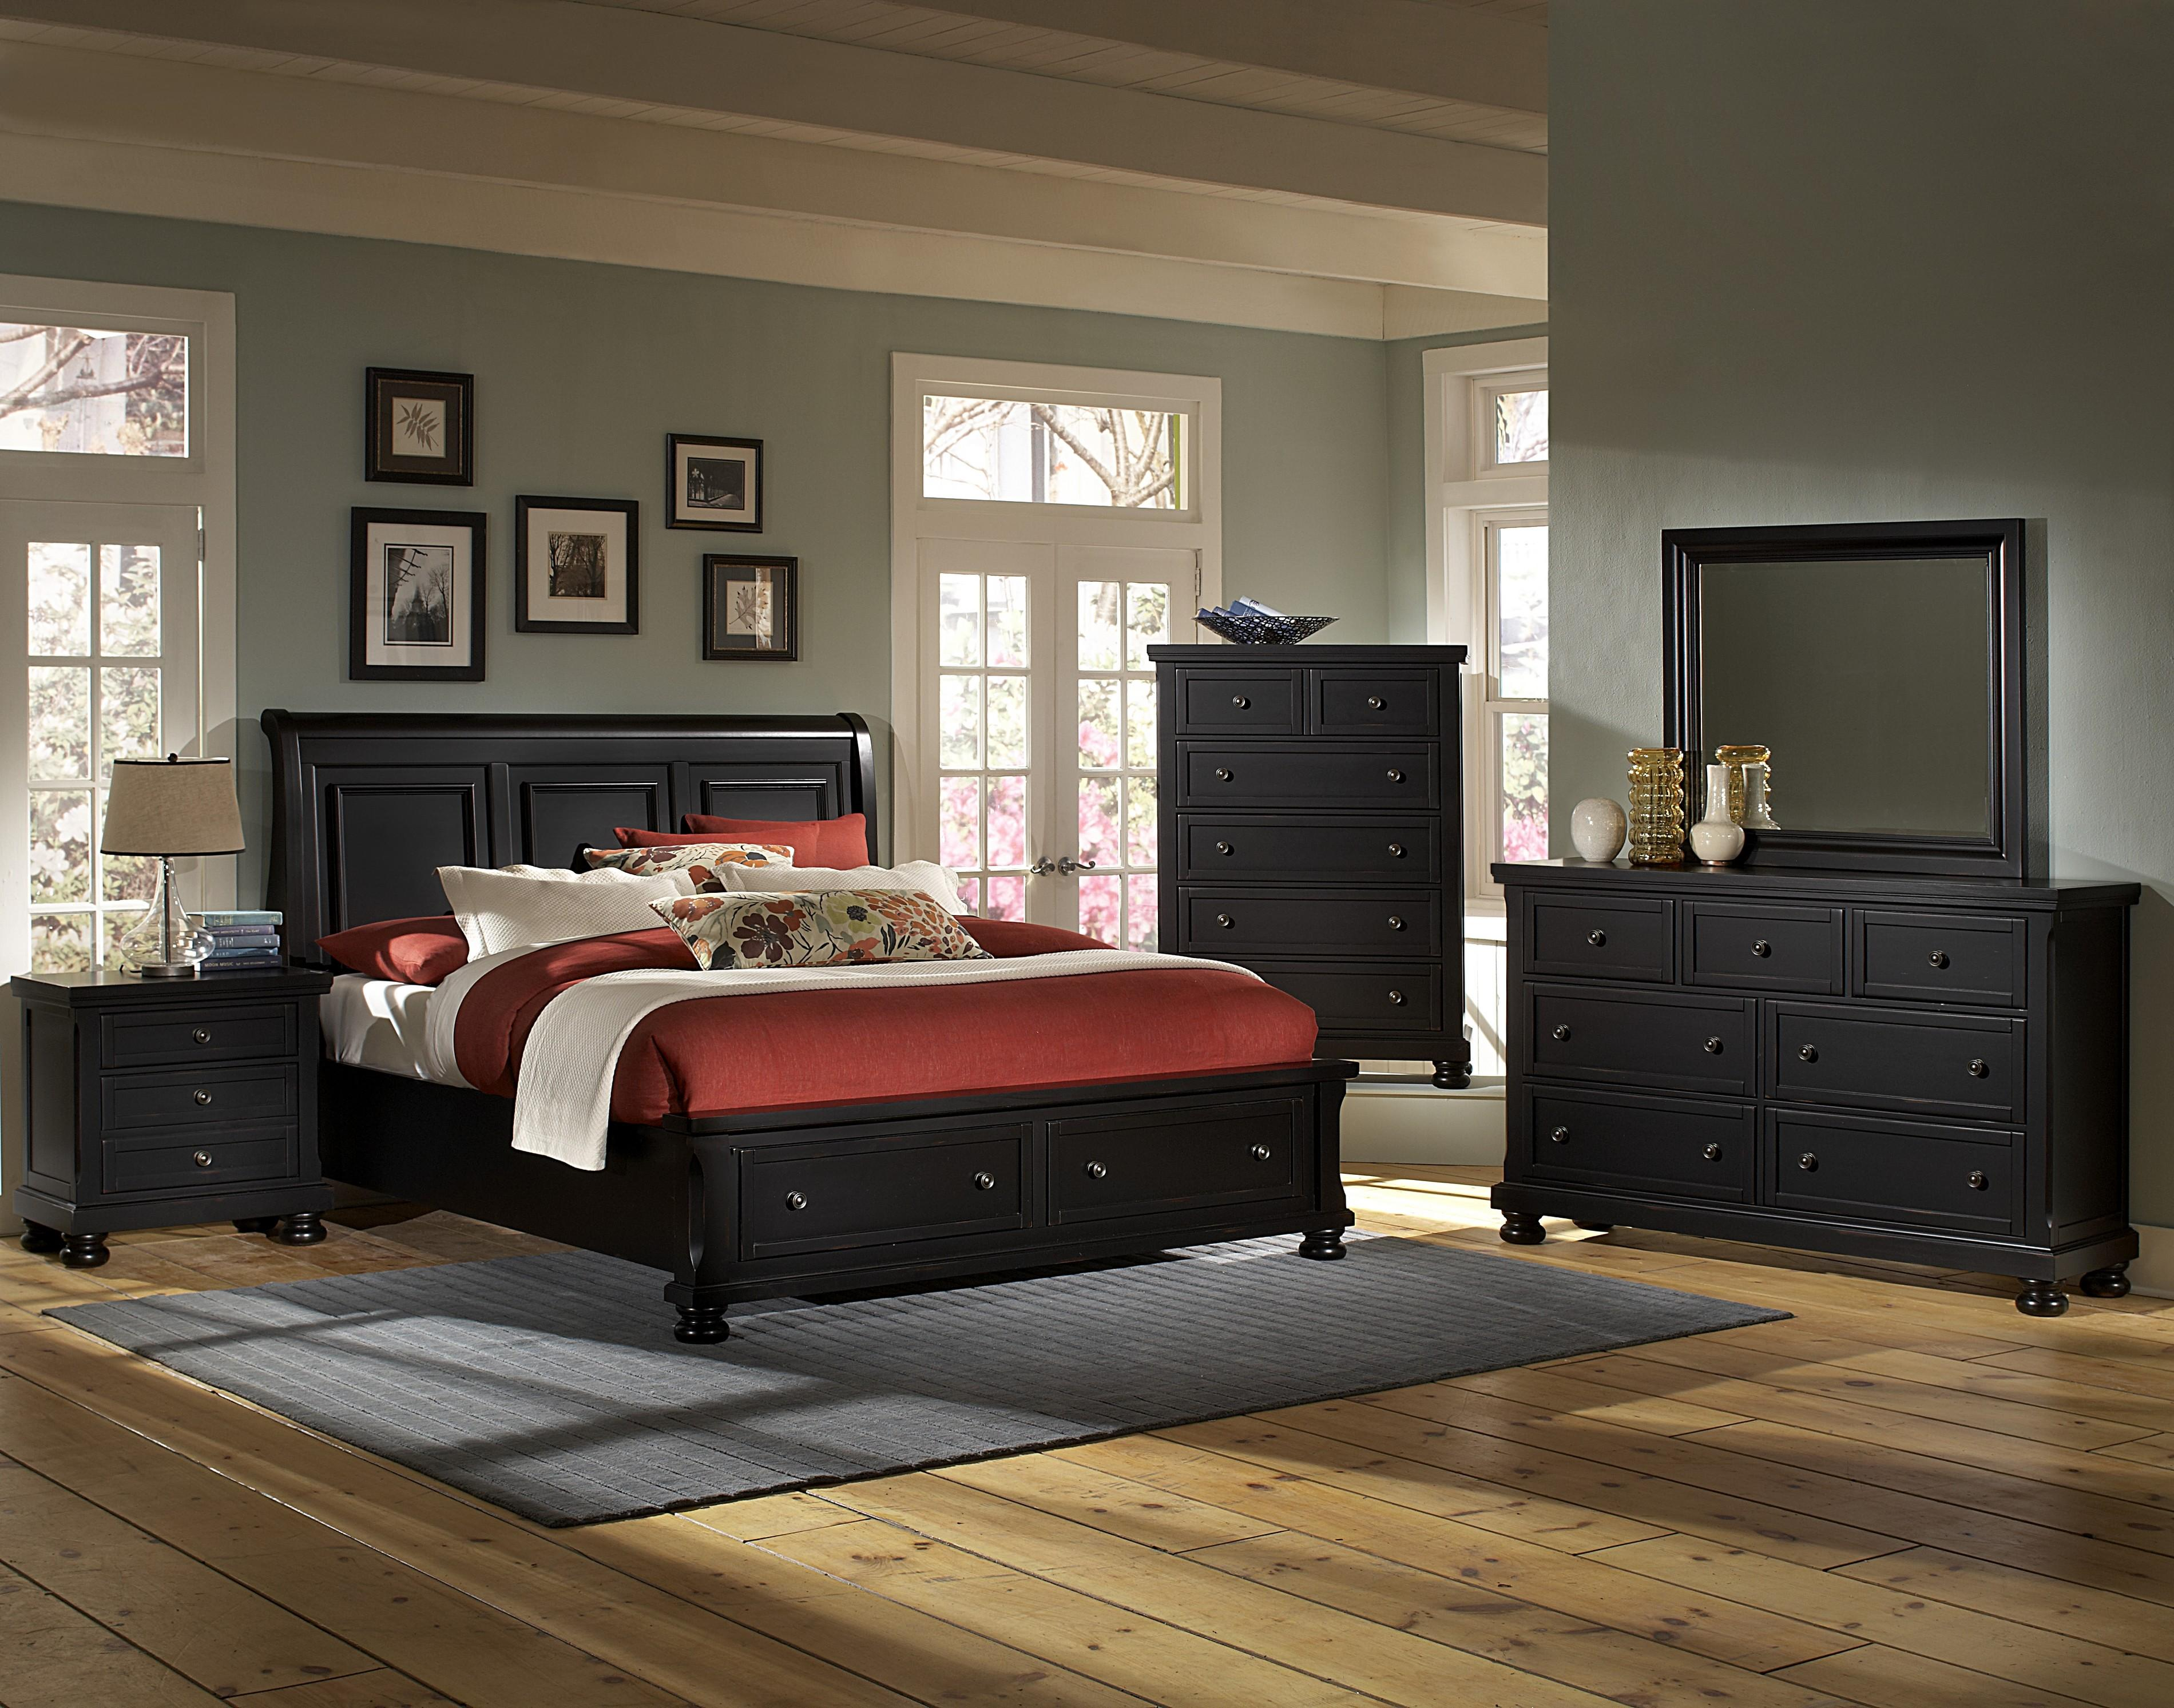 Vaughan Bassett Reflections Queen Bedroom Group - Item Number: 534 Q Bedroom Group 1